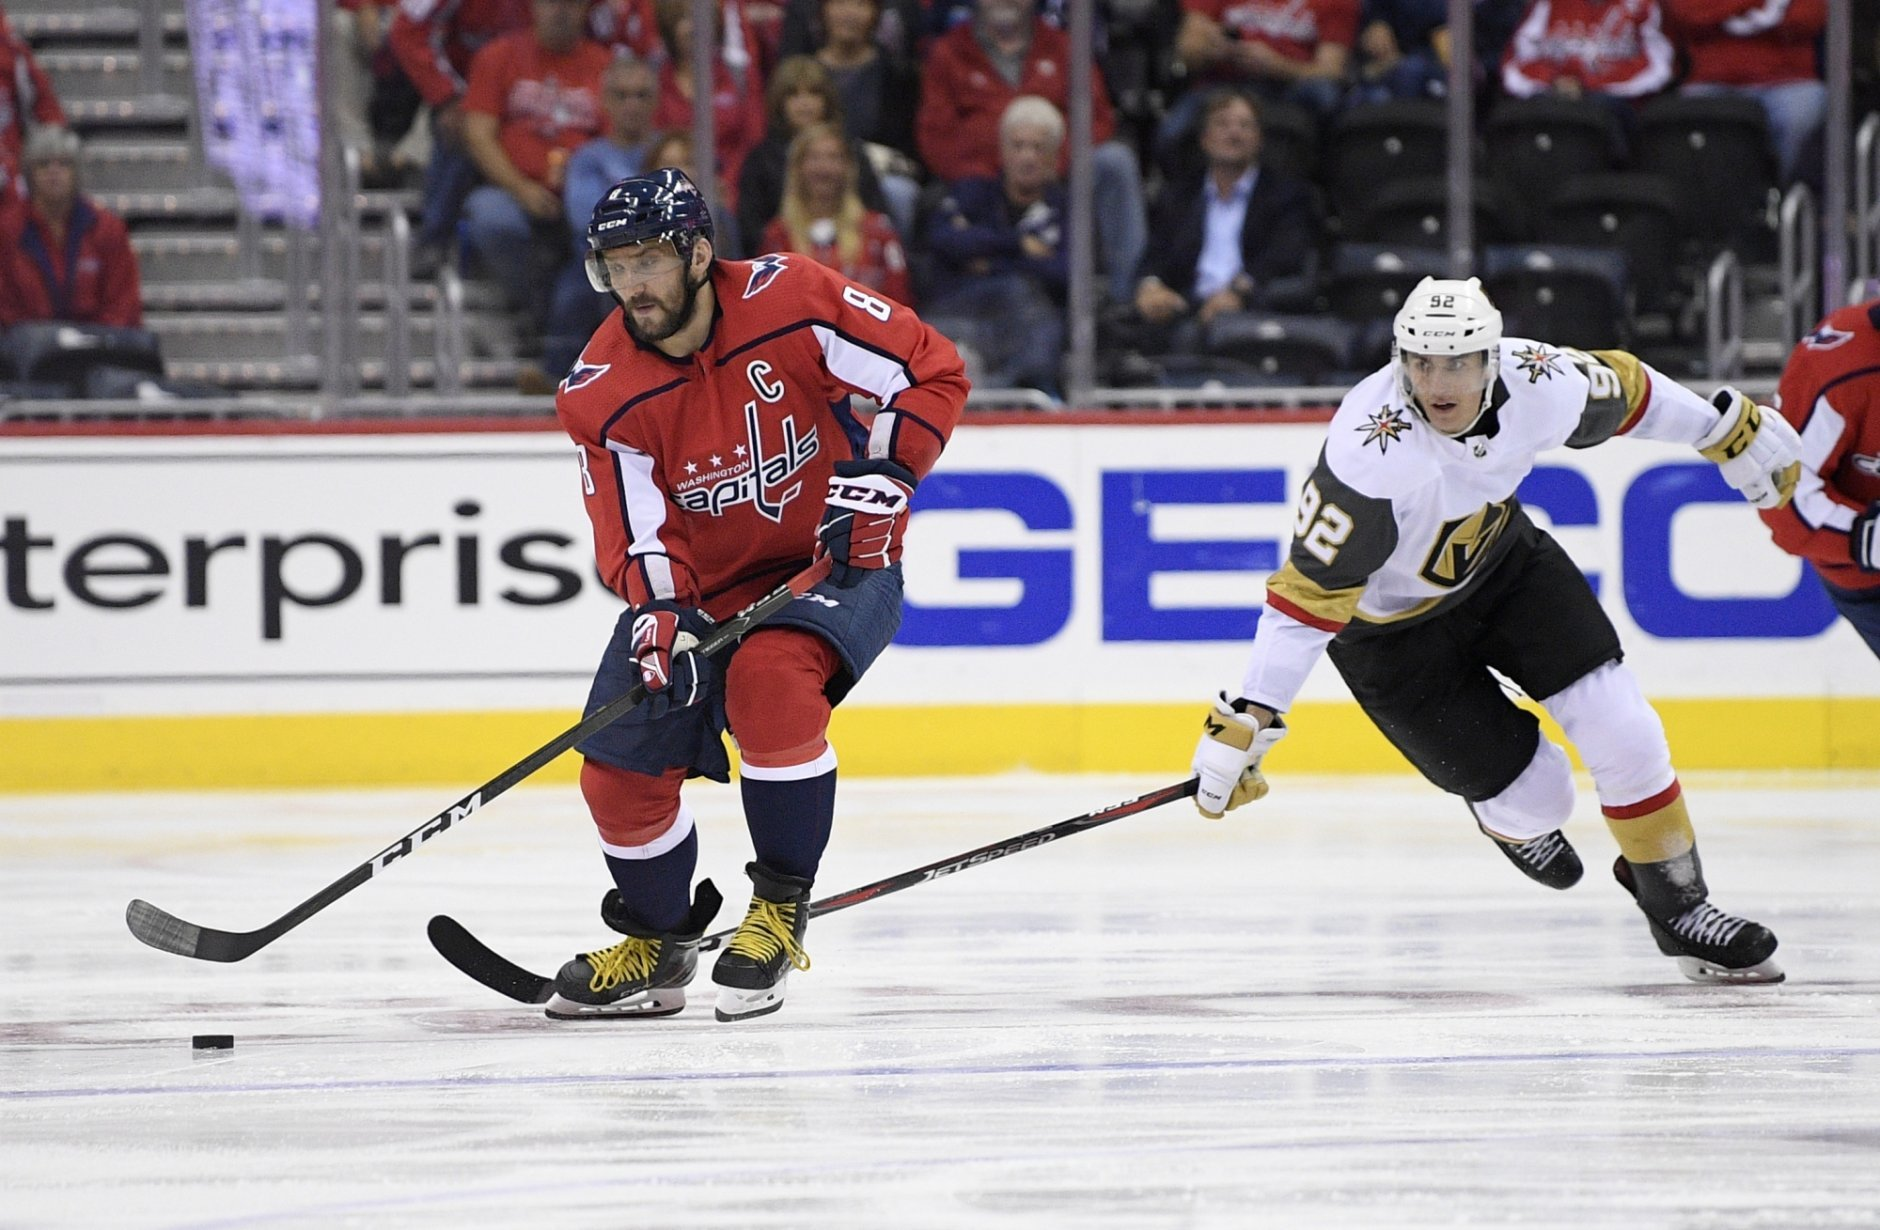 Washington Capitals left wing Alex Ovechkin (8), of Russia, skates with the puck against Vegas Golden Knights left wing Tomas Nosek (92) during the second period of an NHL hockey game Wednesday, Oct. 10, 2018, in Washington. (AP Photo/Nick Wass)